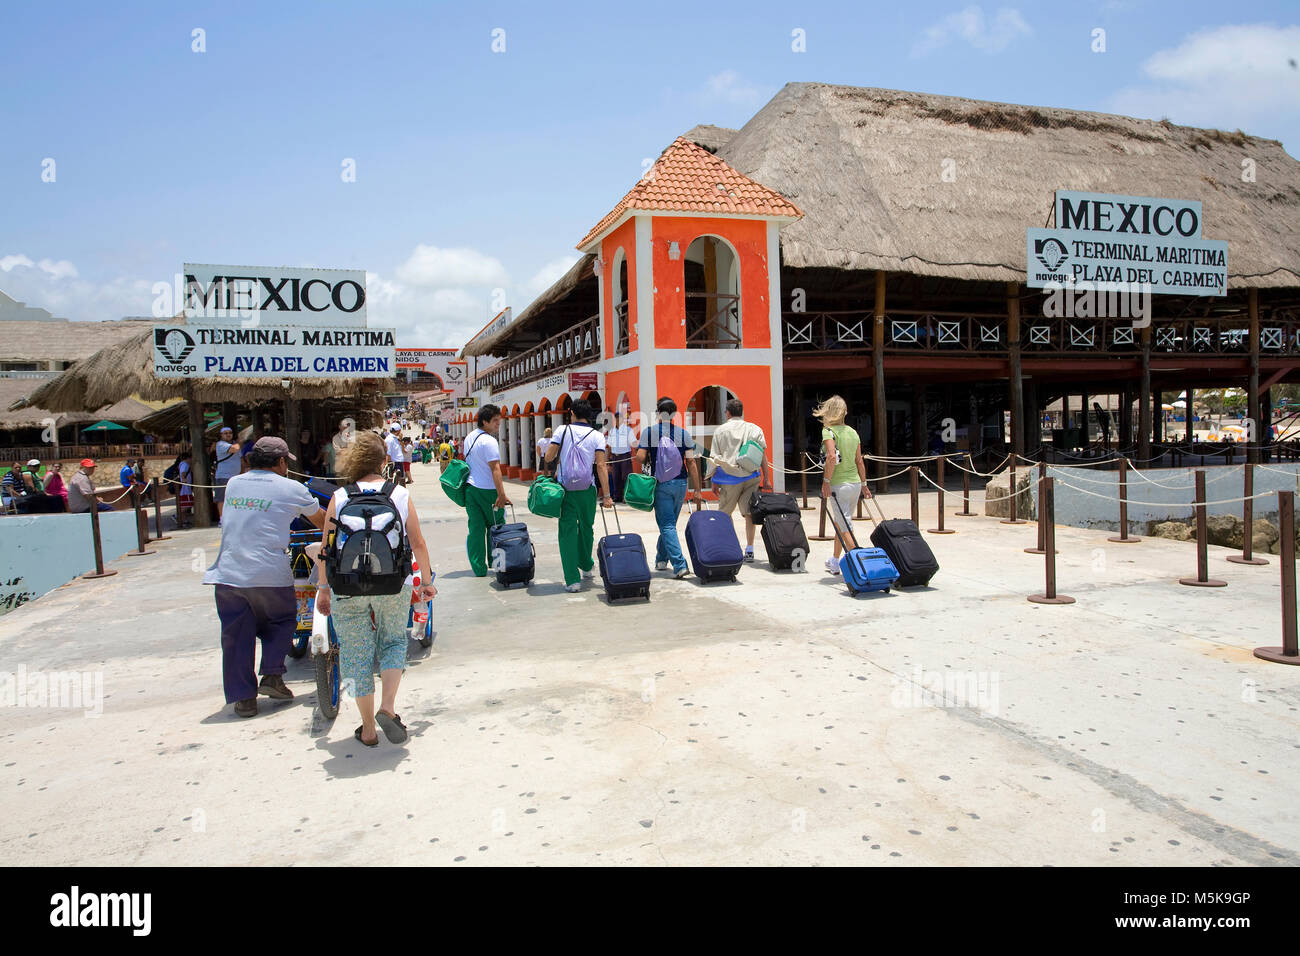 Traveller on pier, departure of ferry from Cozumel to Playa del Carmen, Mexico, Caribbean - Stock Image